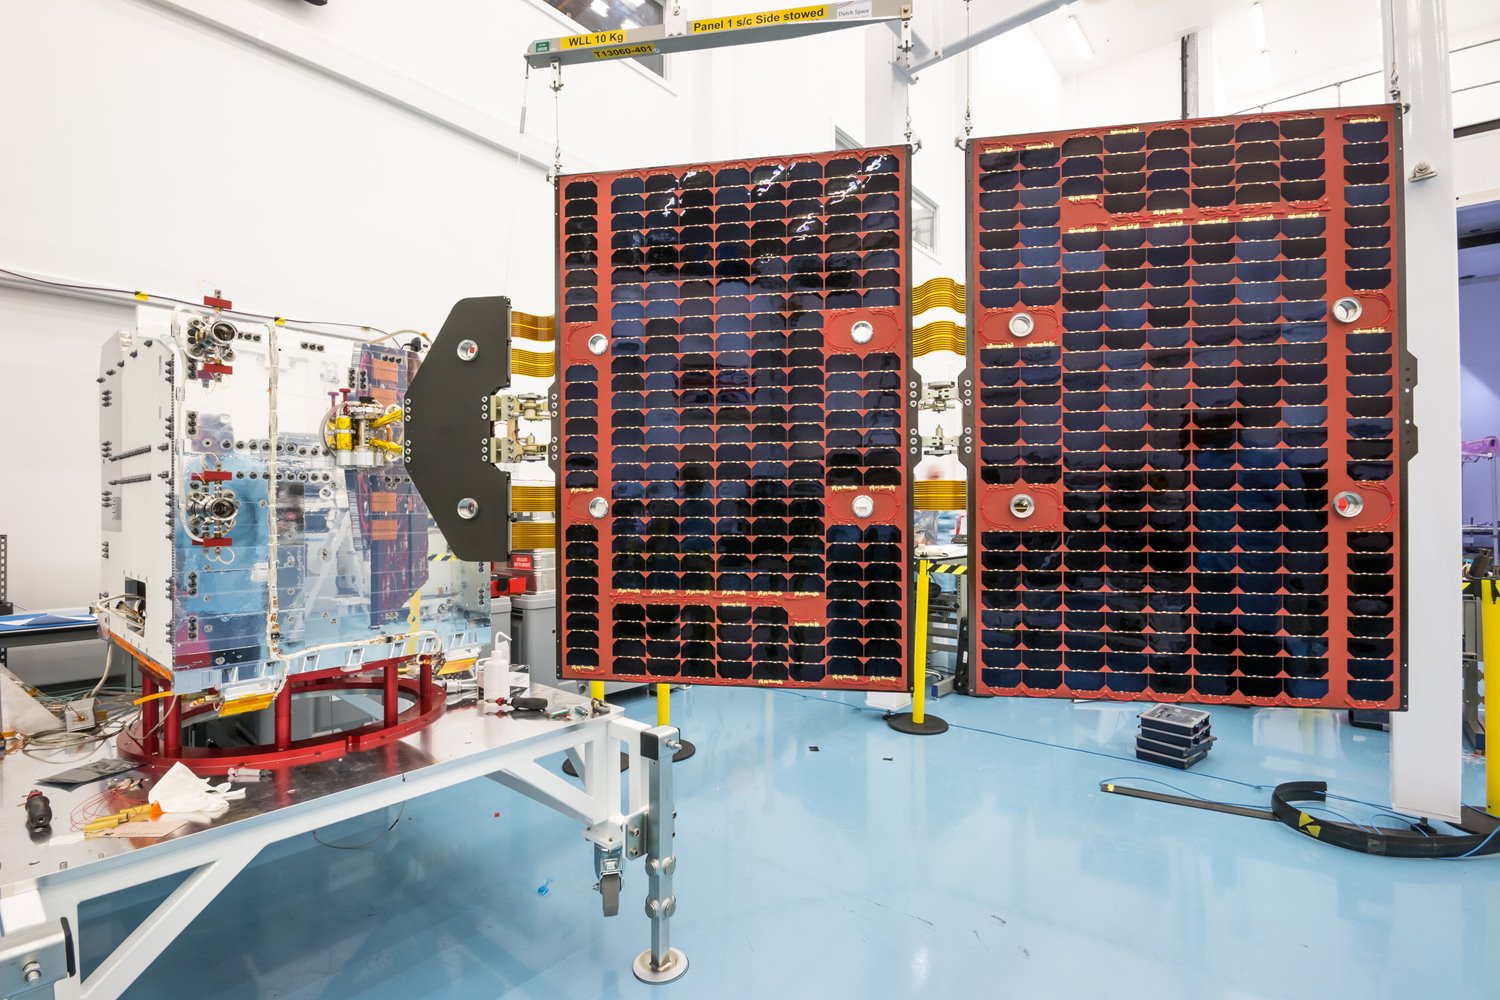 SSTL expertise enables new space mission for the FORMOSAT-7 weather constellation